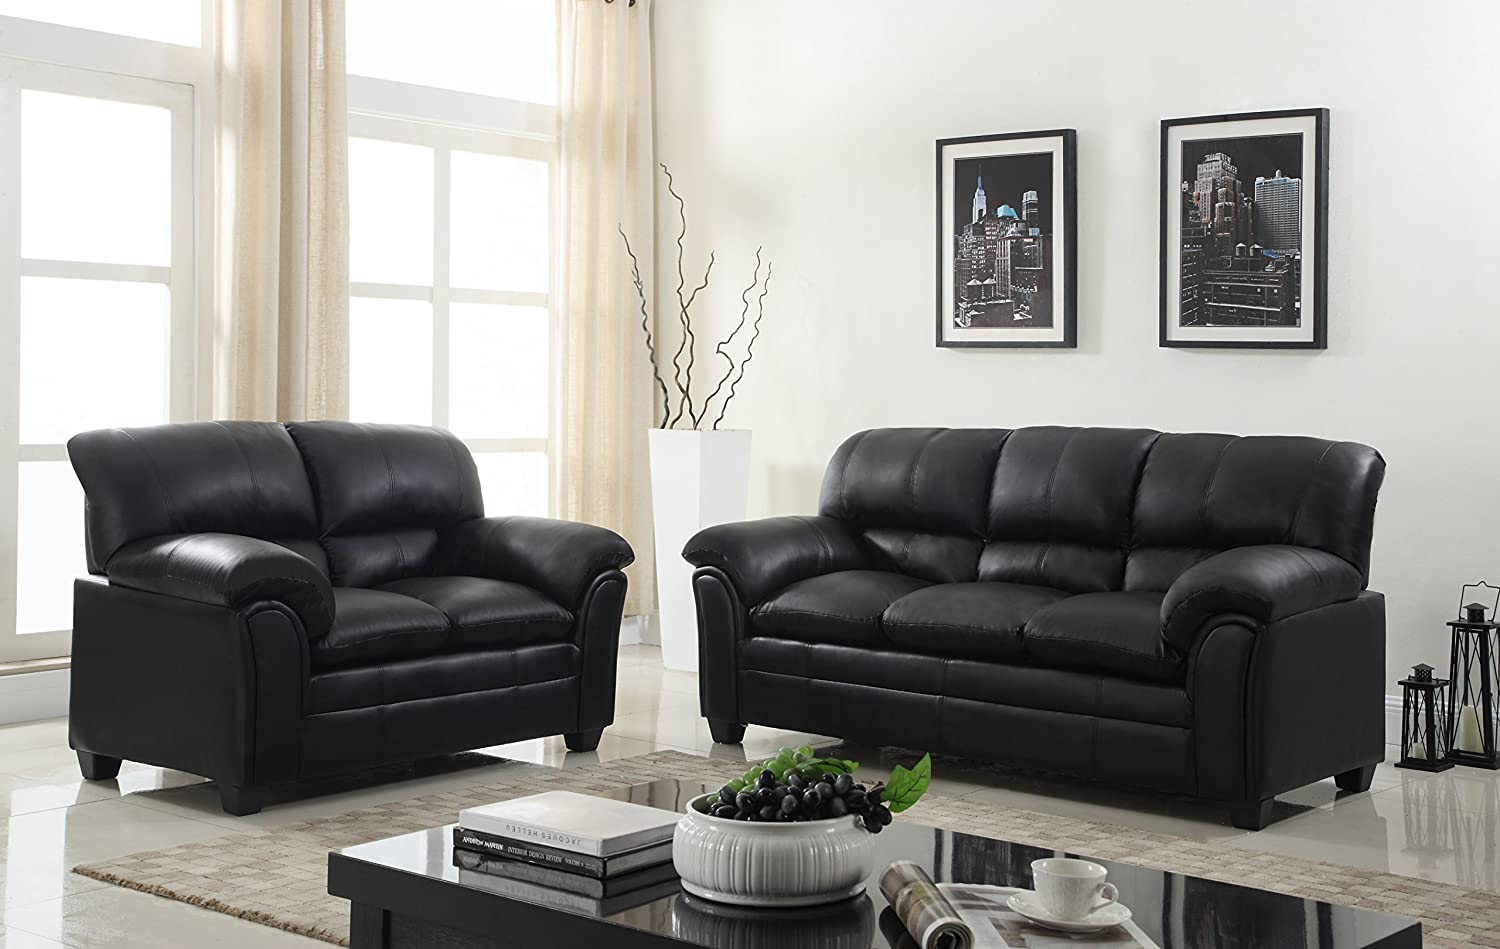 Amazon com gtu furniture new faux leather sofa and loveseat living room furniture set black kitchen dining